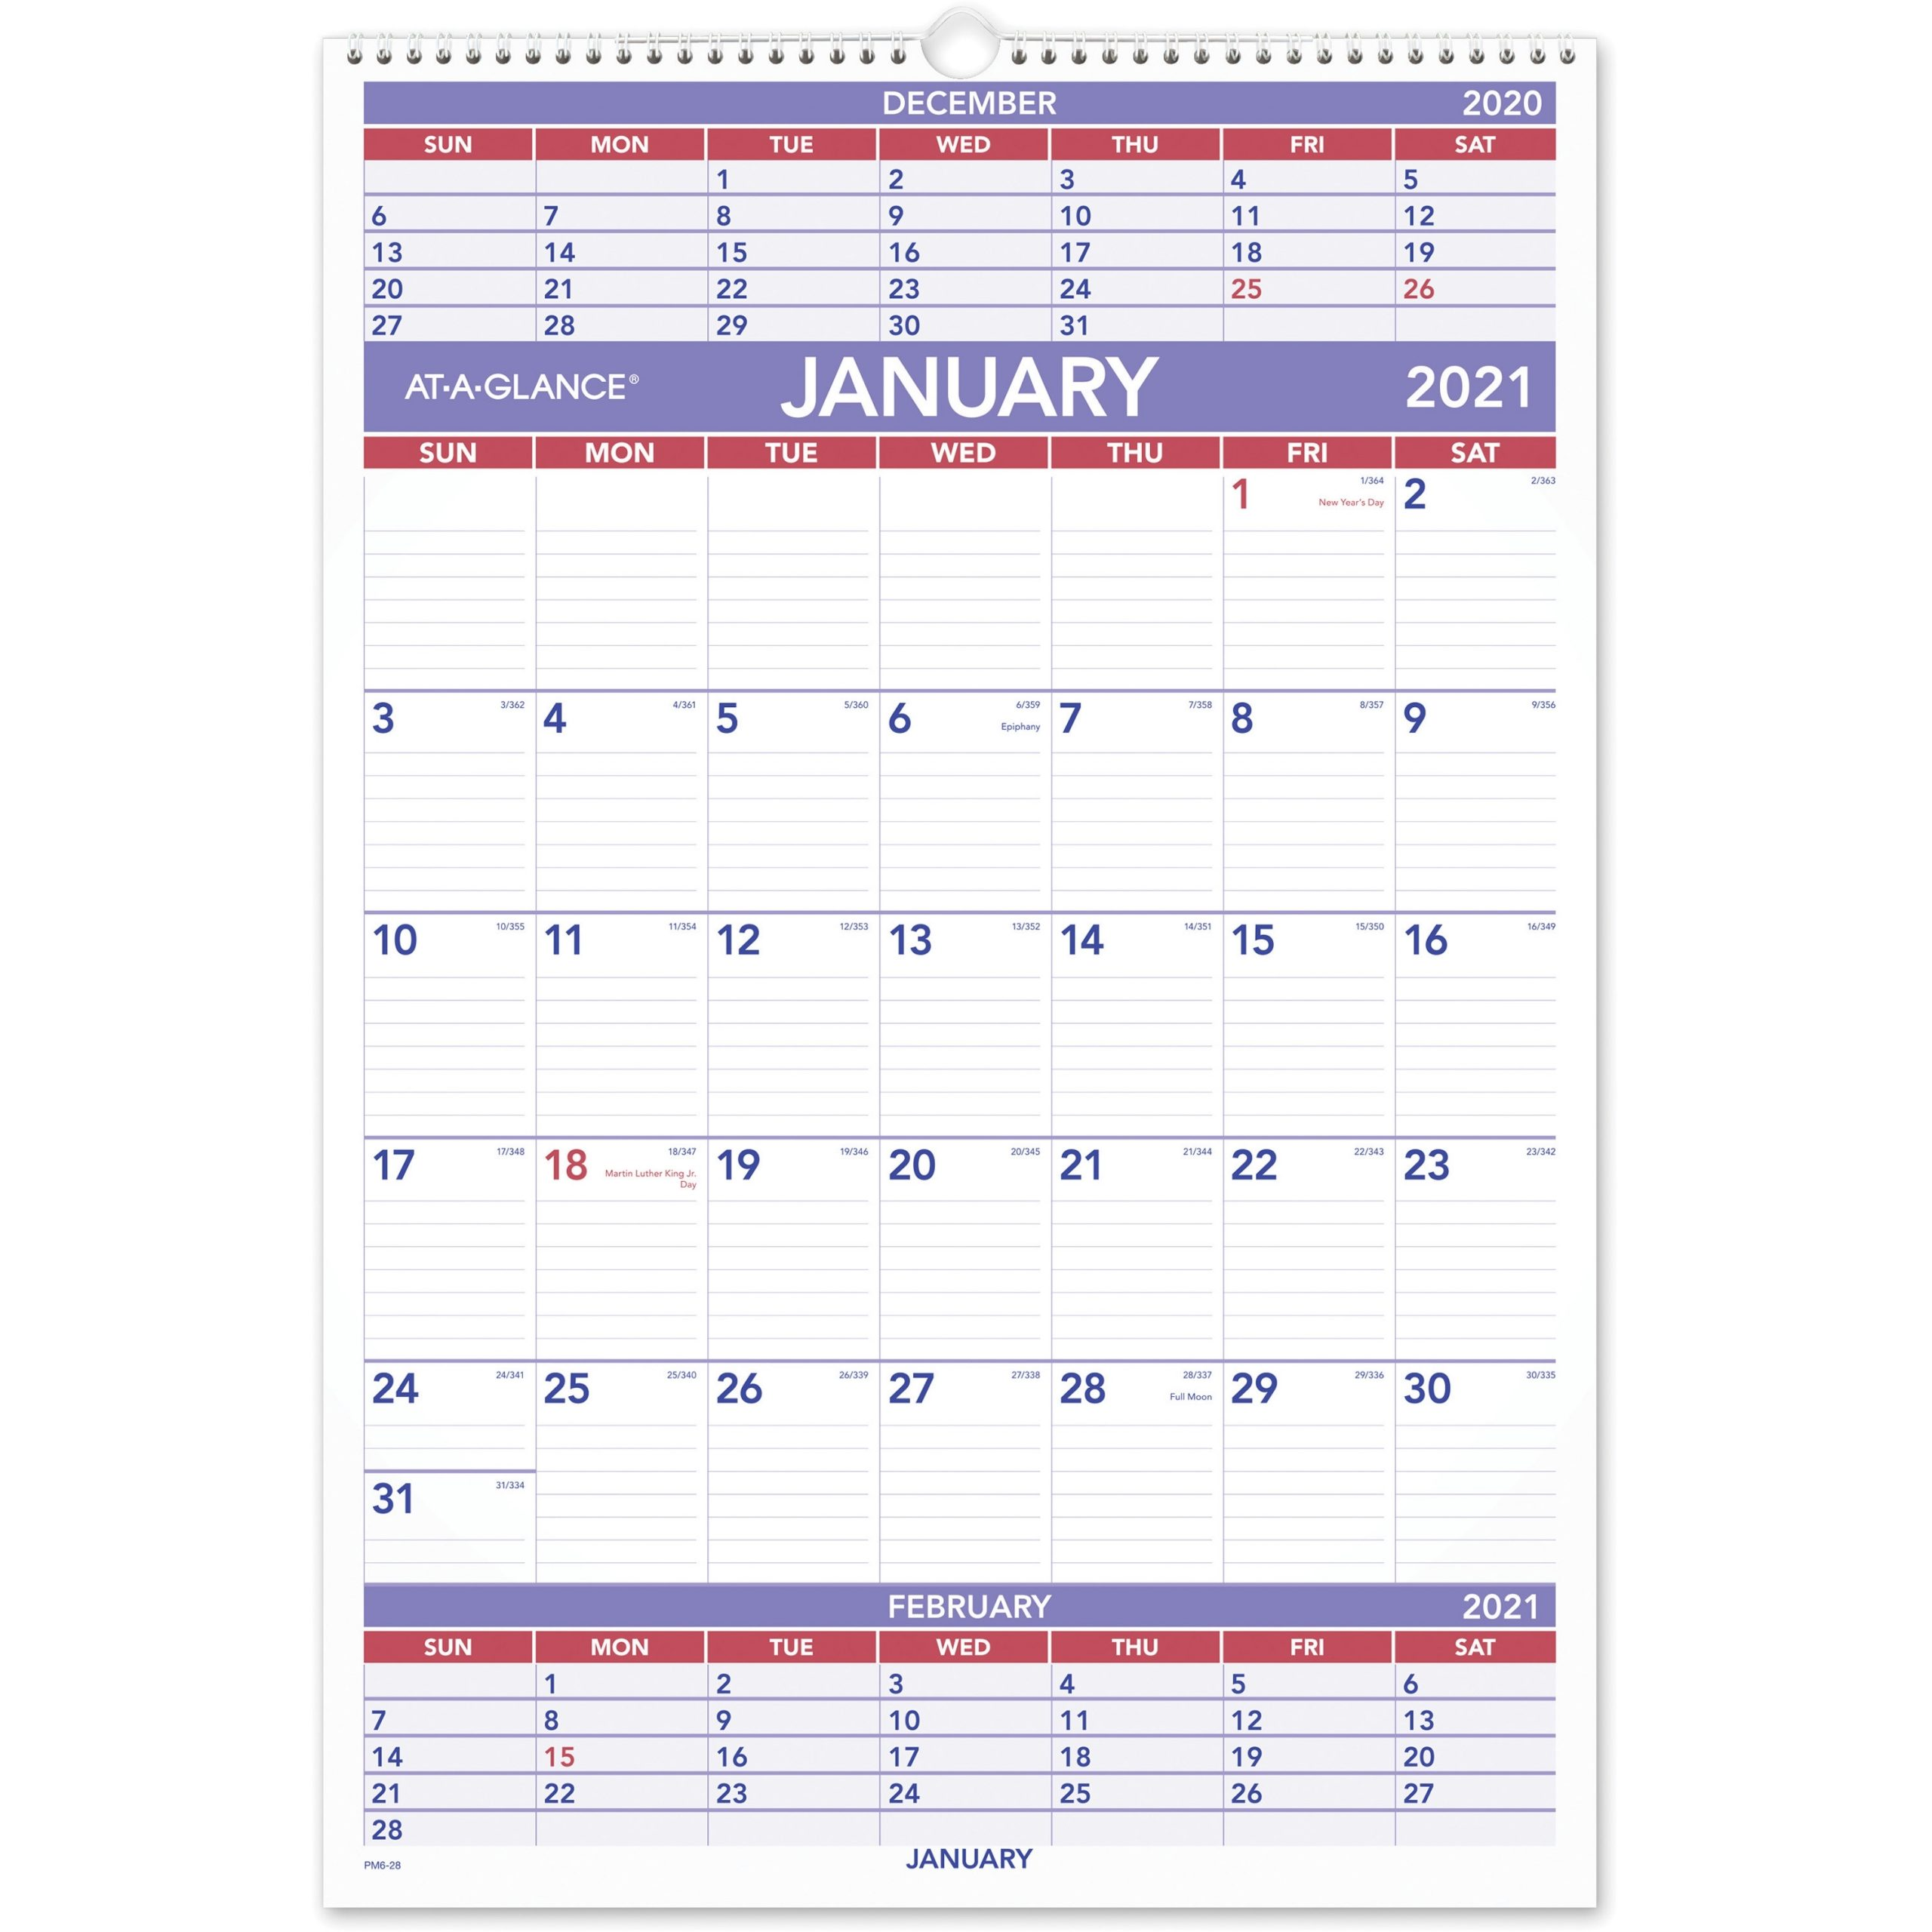 """At-A-Glance 3-Month Wall Calendar - Julian Dates - Quarterly - 1 Year -  January 2021 Till December 2021 - 3 Month Single Page Layout - 15 1/2"""" X 22"""